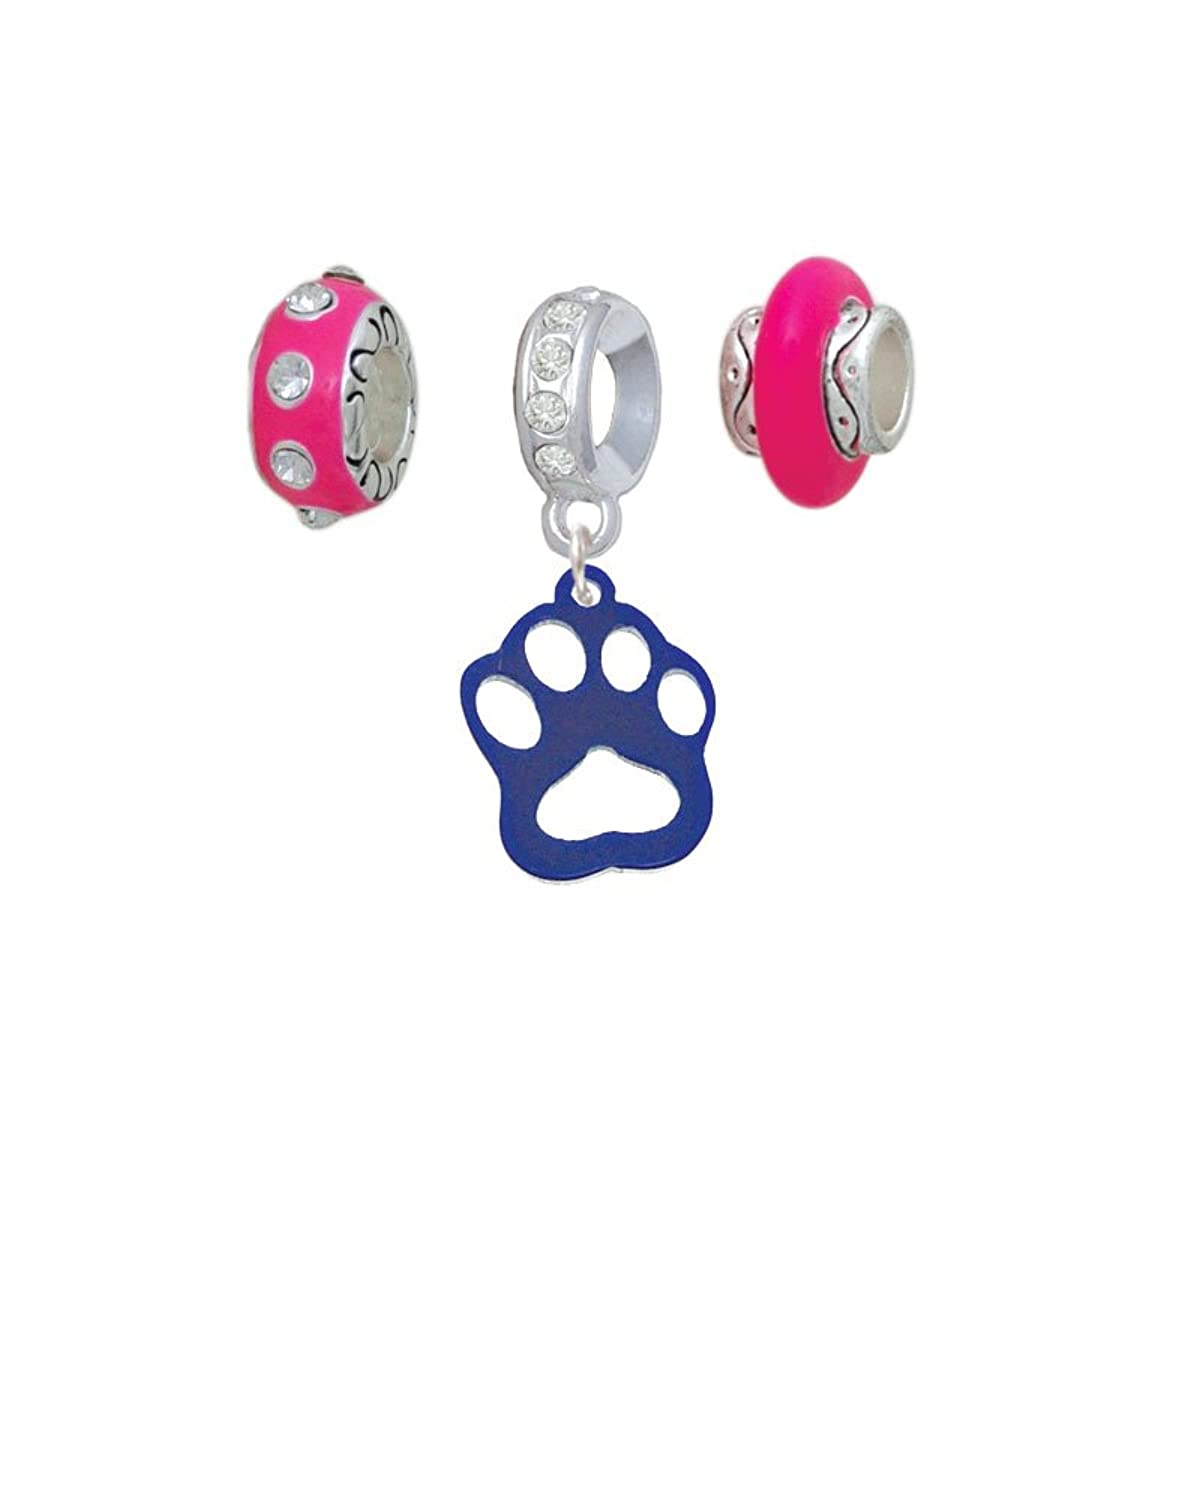 Acrylic Small Paw Hot Pink Charm Beads (Set of 3)